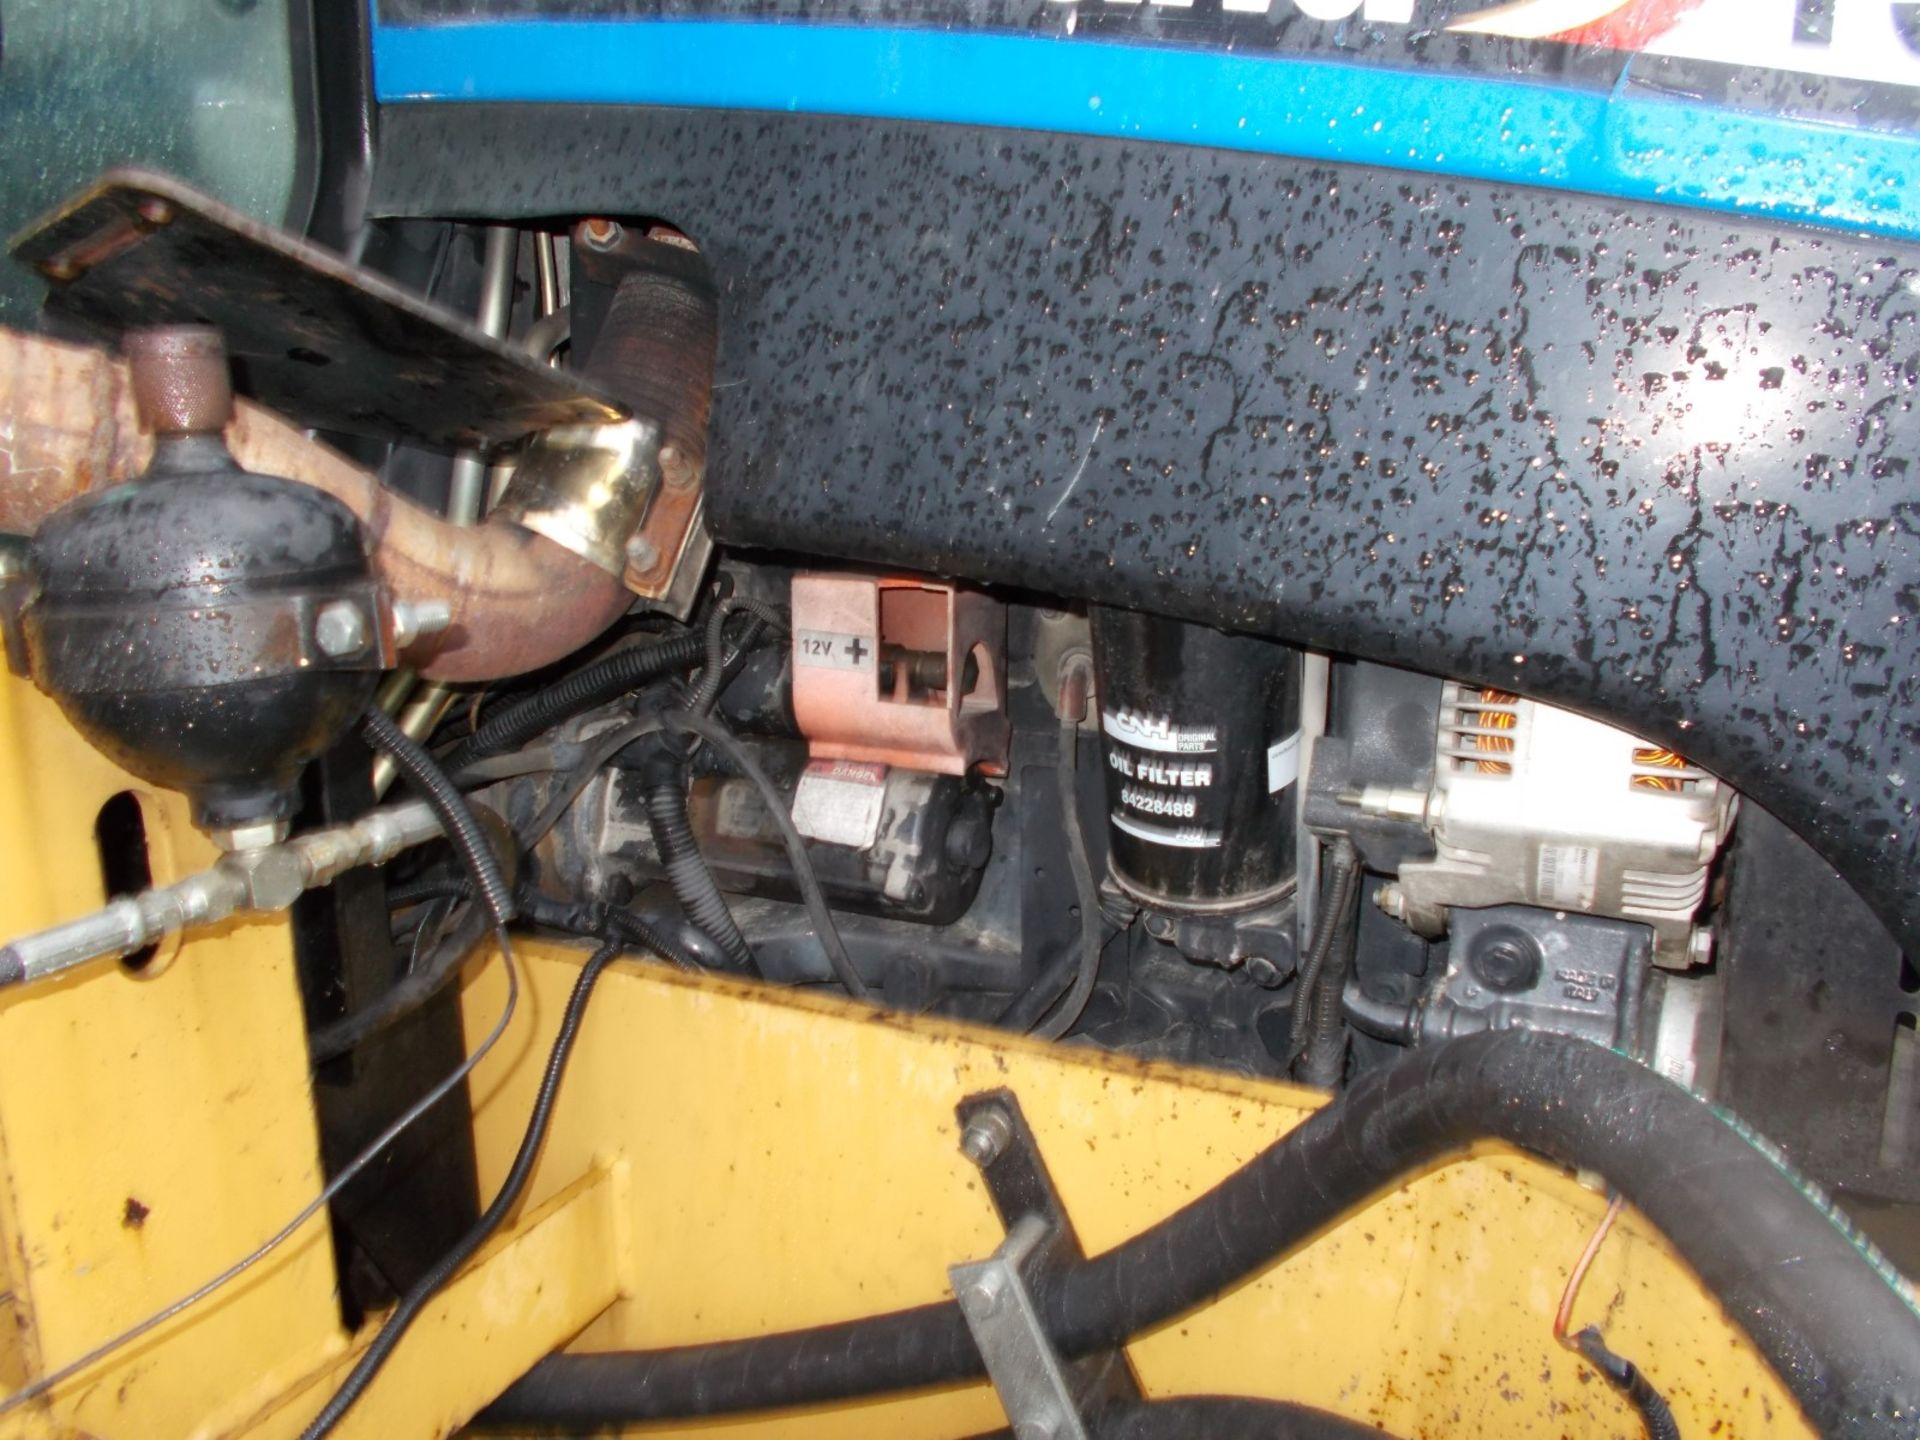 2003 NEW HOLLAND TS100A TRACTOR WITH MOWER ATTACHMENT, 4.5 LITRE 100HP TURBO DIESEL *PLUS VAT* - Image 24 of 24